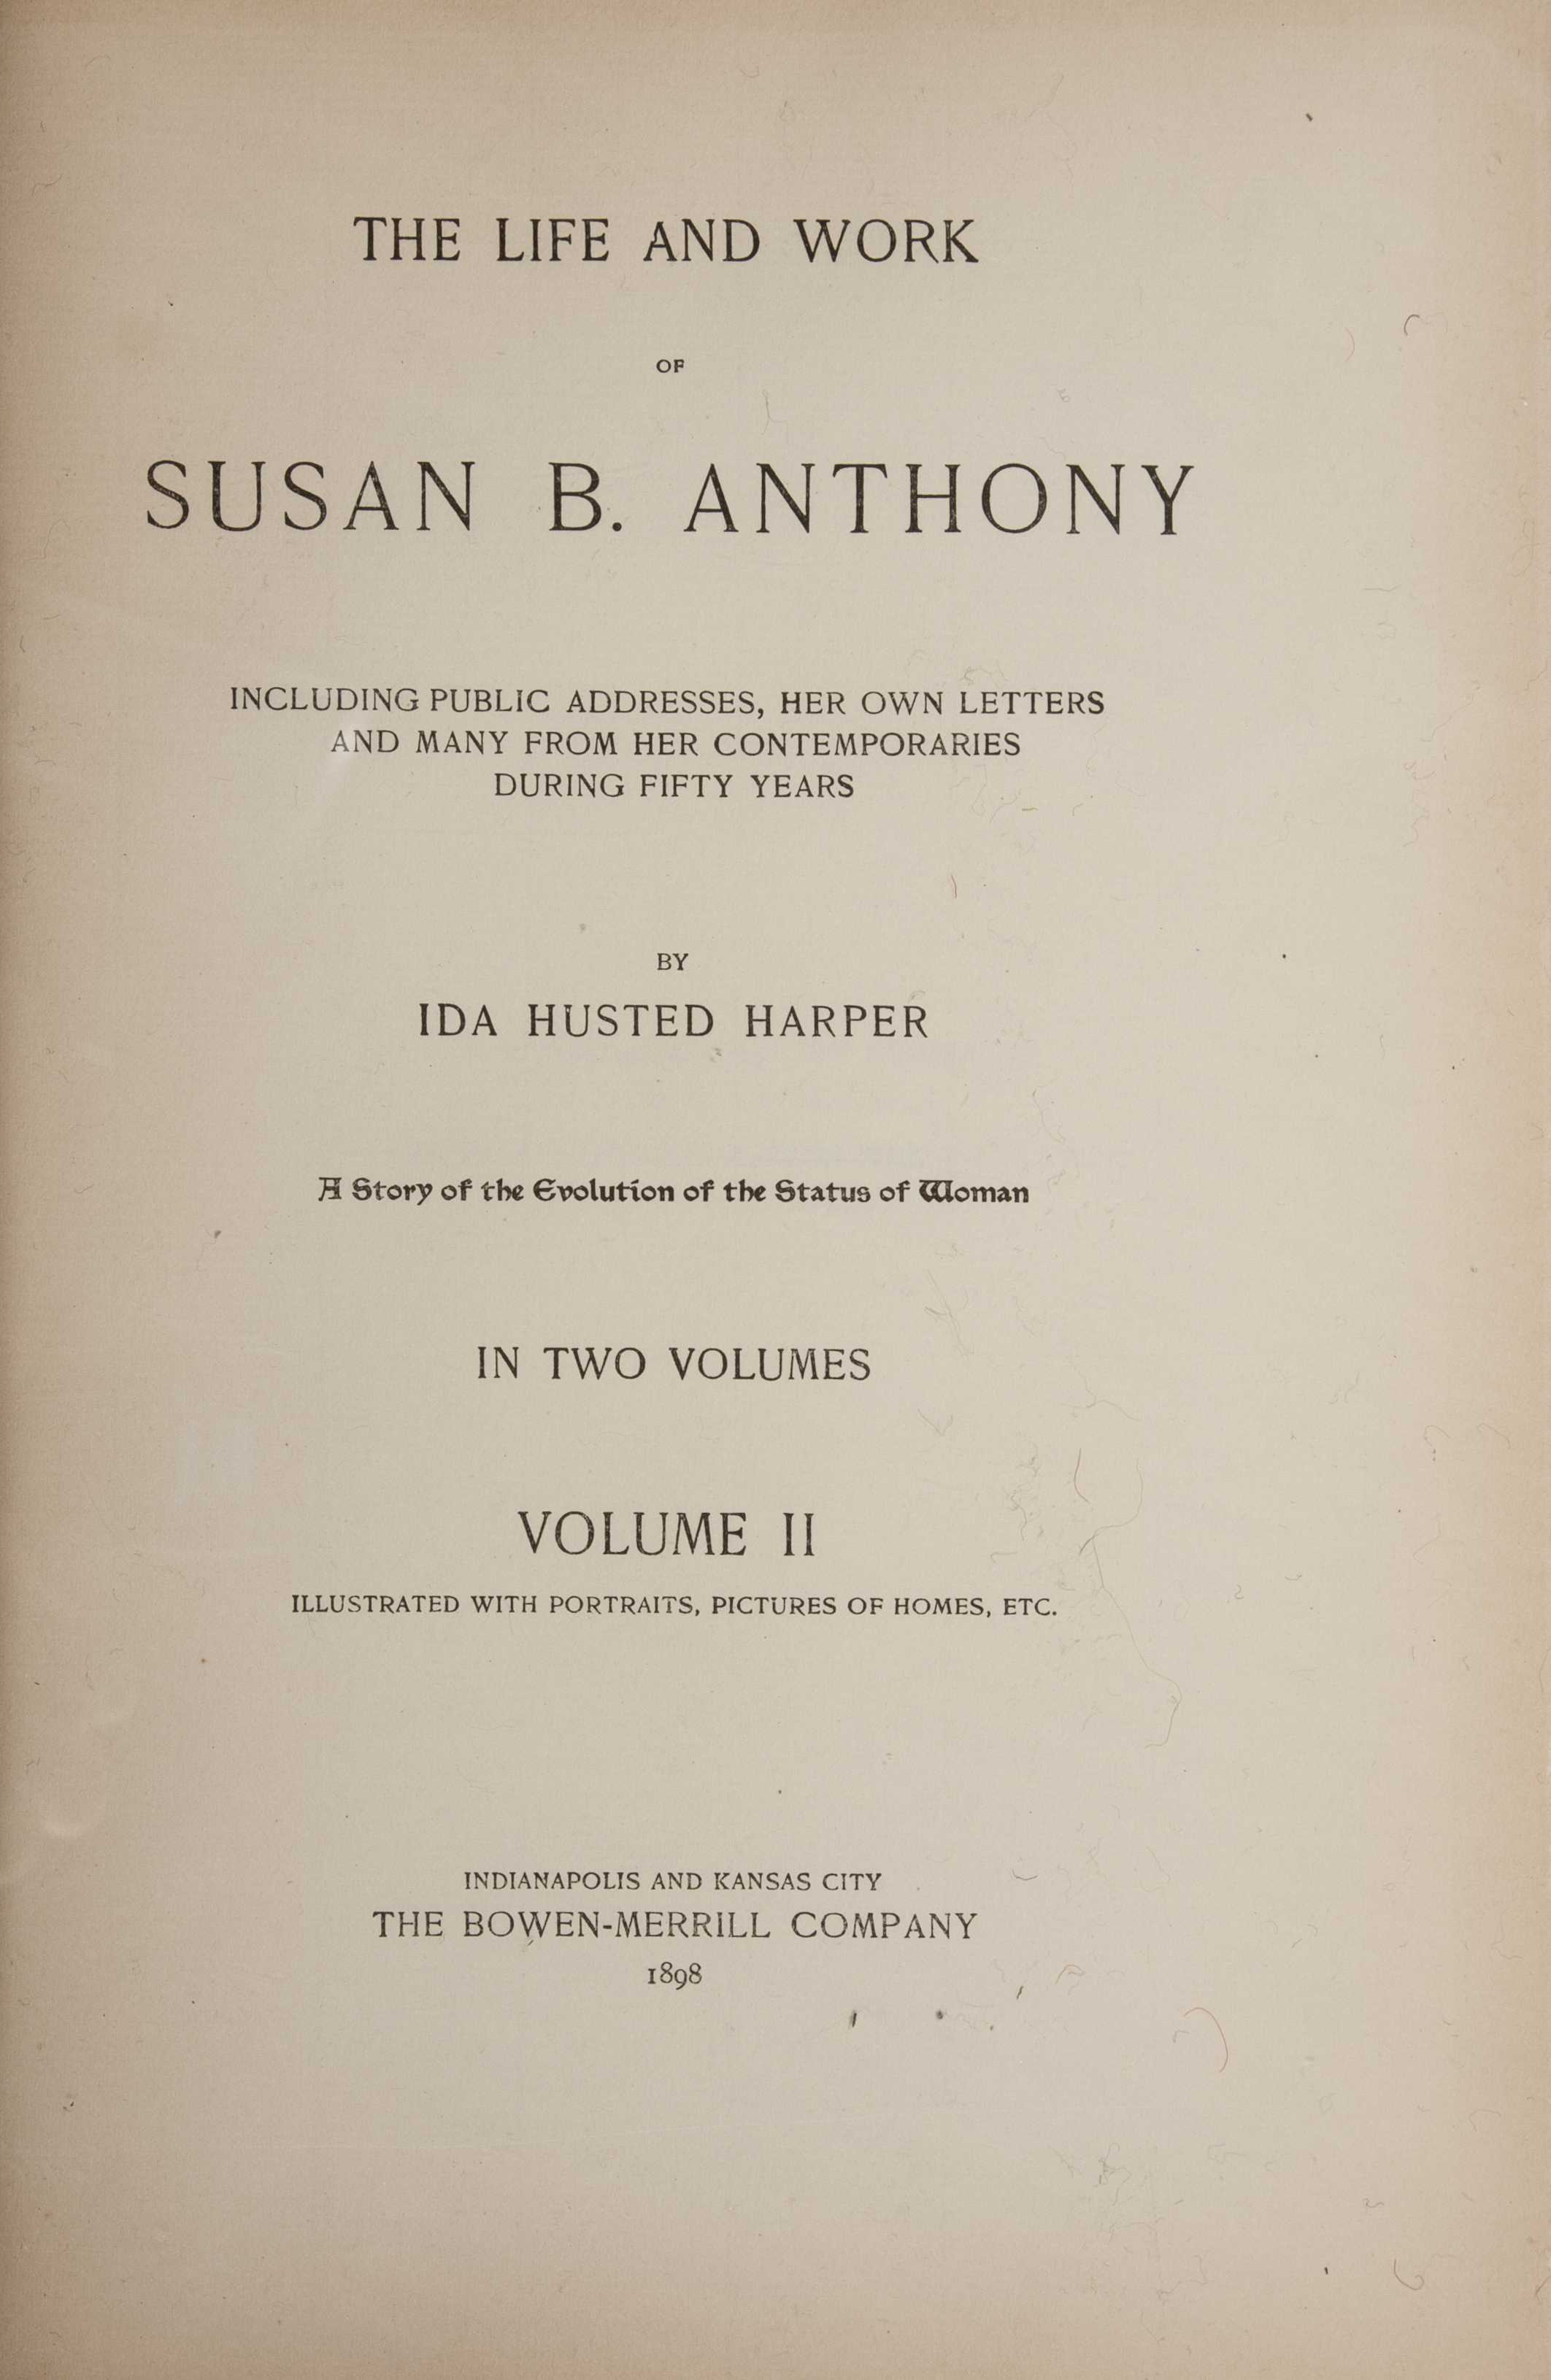 the life and work of susan b anthony Life and work of susan b anthony rare book for sale this first edition by ida husted harper, susan b anthony is available at bauman rare books.